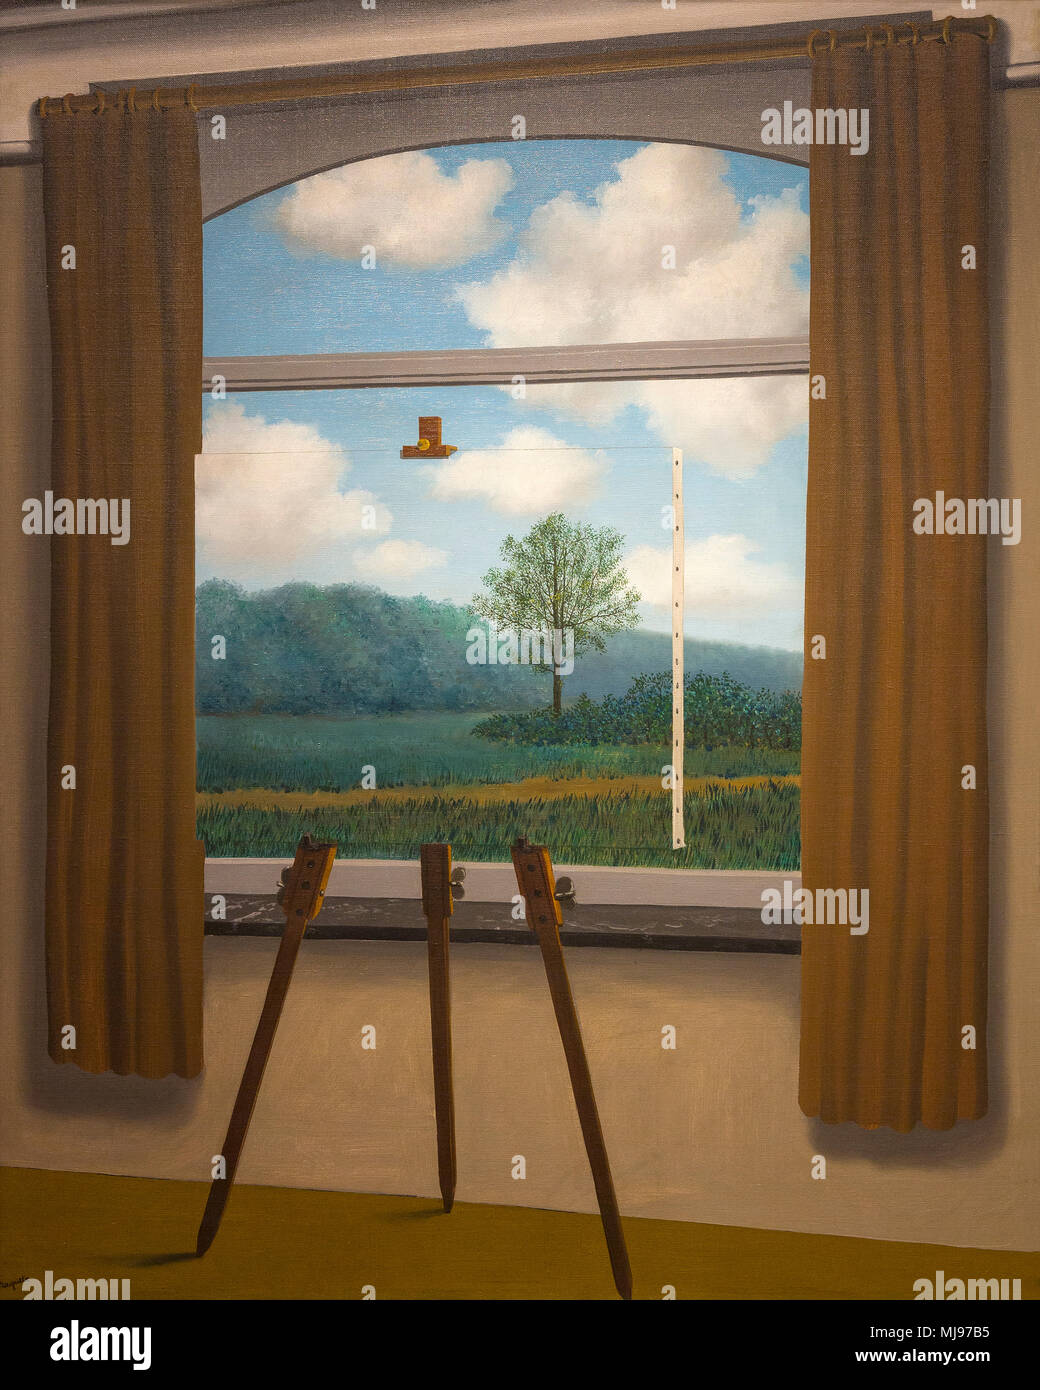 La Condition Humaine, The Human Condition, Rene Magritte, 1933, National Gallery of Art, Washington DC, USA, North America - Stock Image